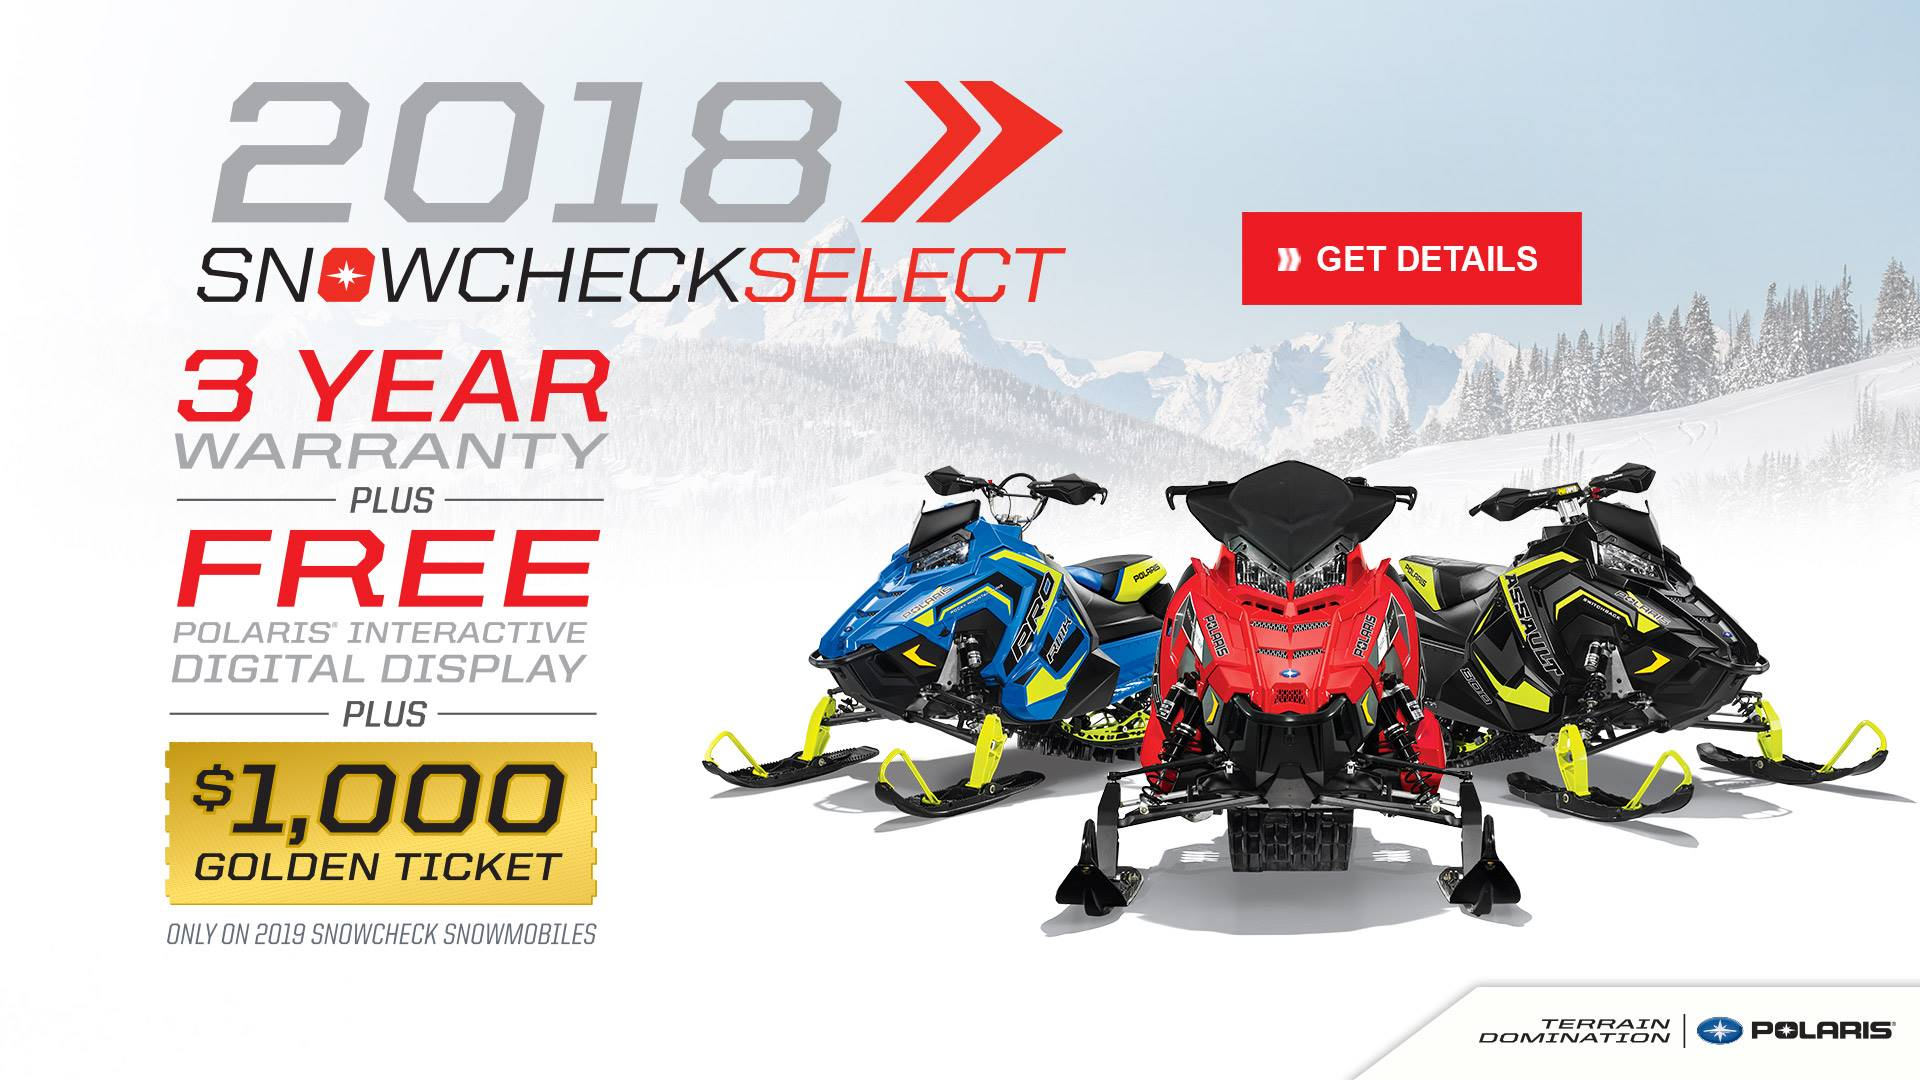 Polaris 2018 SnowCheck Select Offers